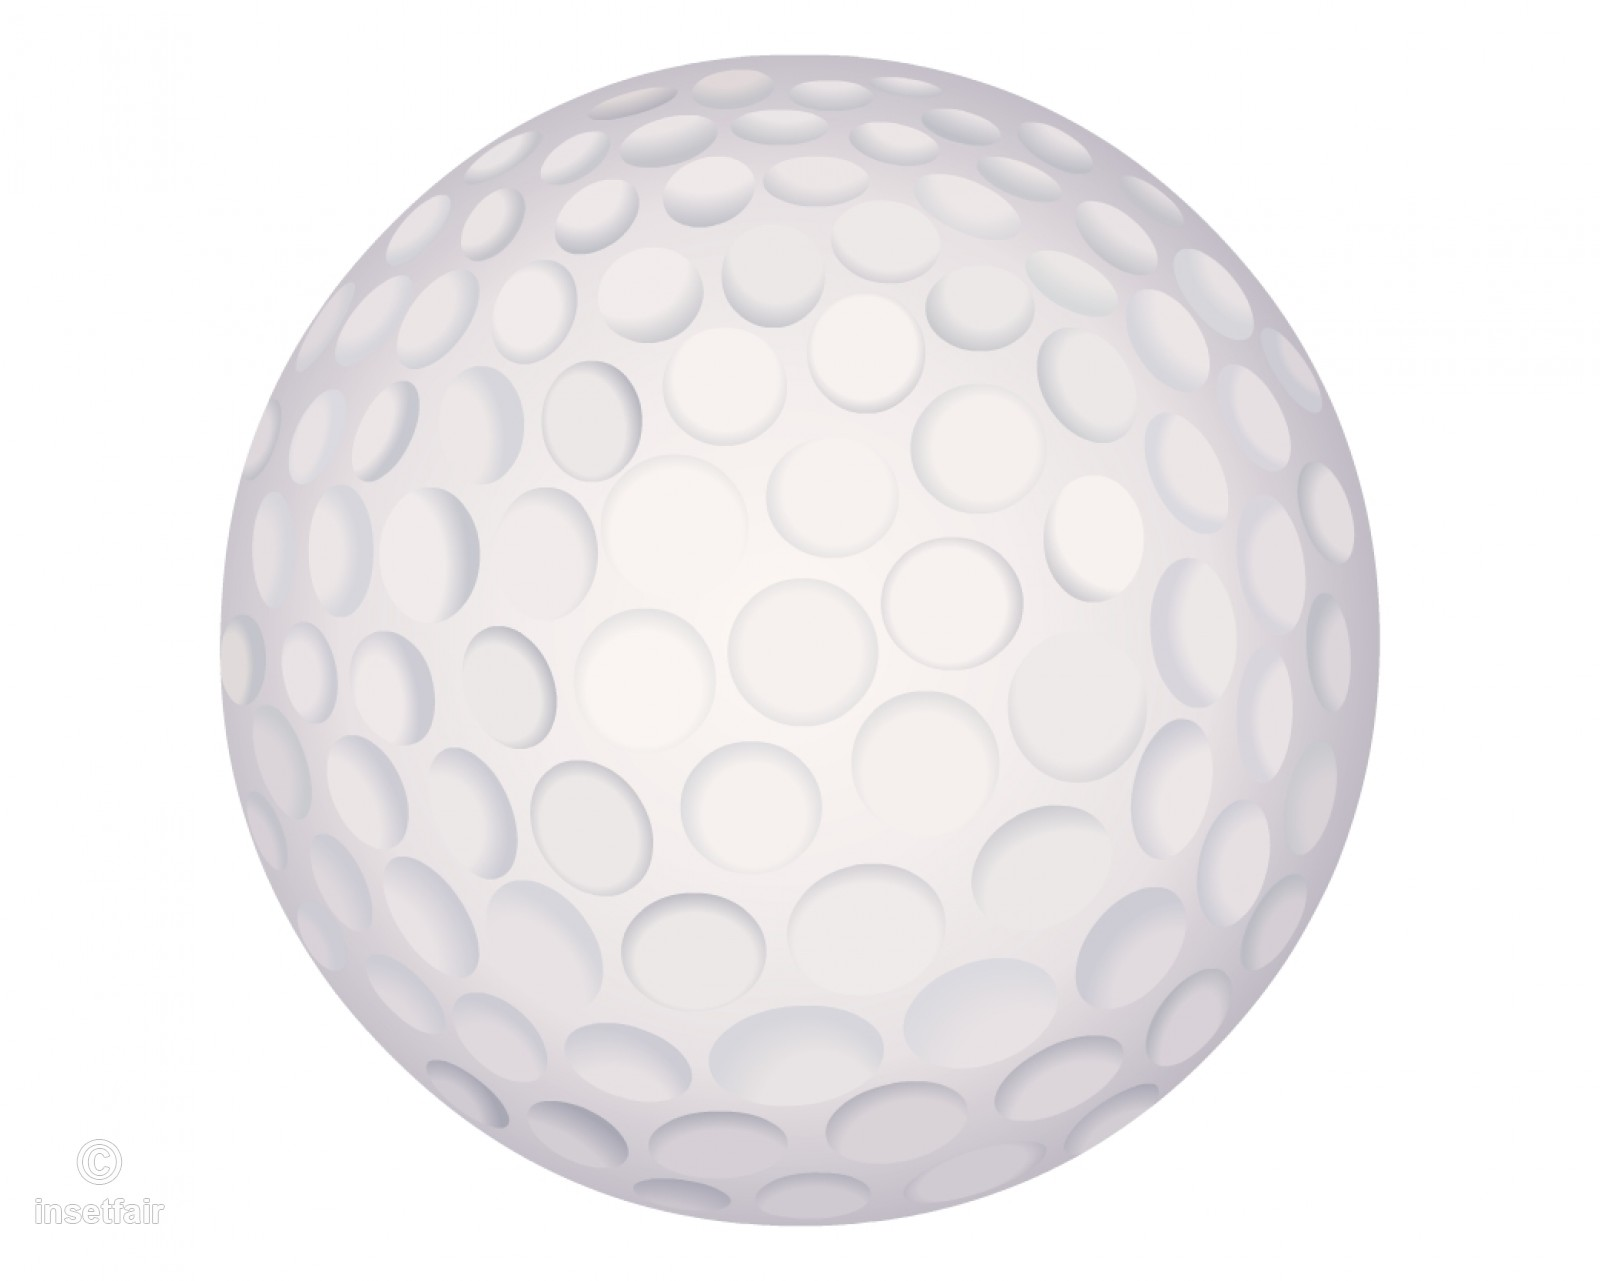 Golf ball png vector clipart free download.